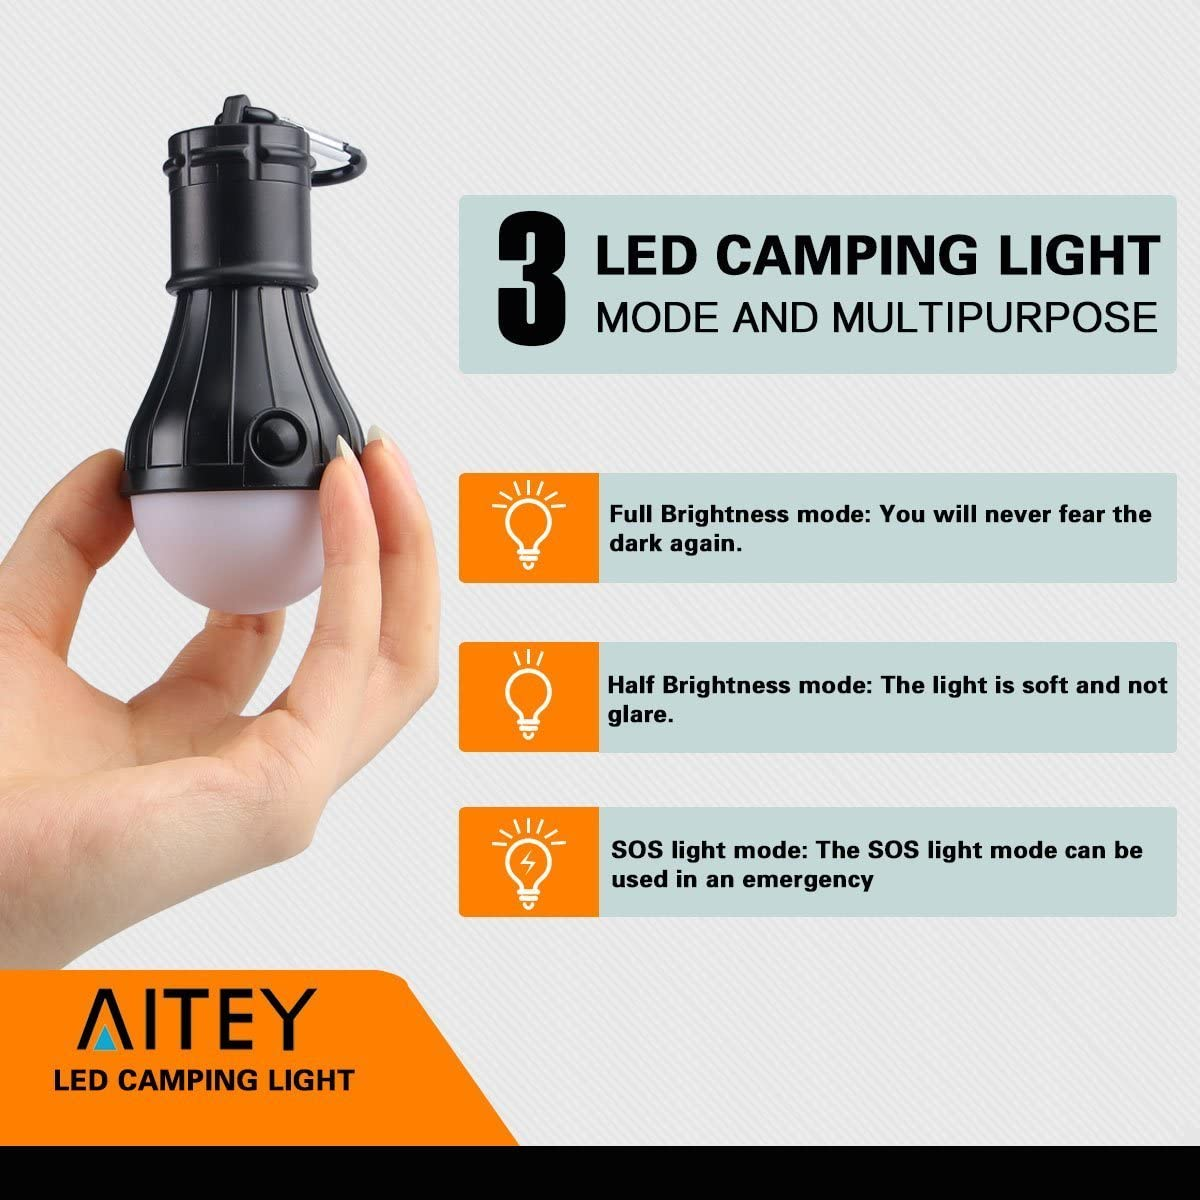 4 PCS LED Tent Lamp Hurricane Emergency Tent Light Backpacking Hiking Fishing /& Outdoor Lighting Bug Out Bag Camping Equipment Portable Tent Lantern Compact /& Water Resistant Gift Color Mixing